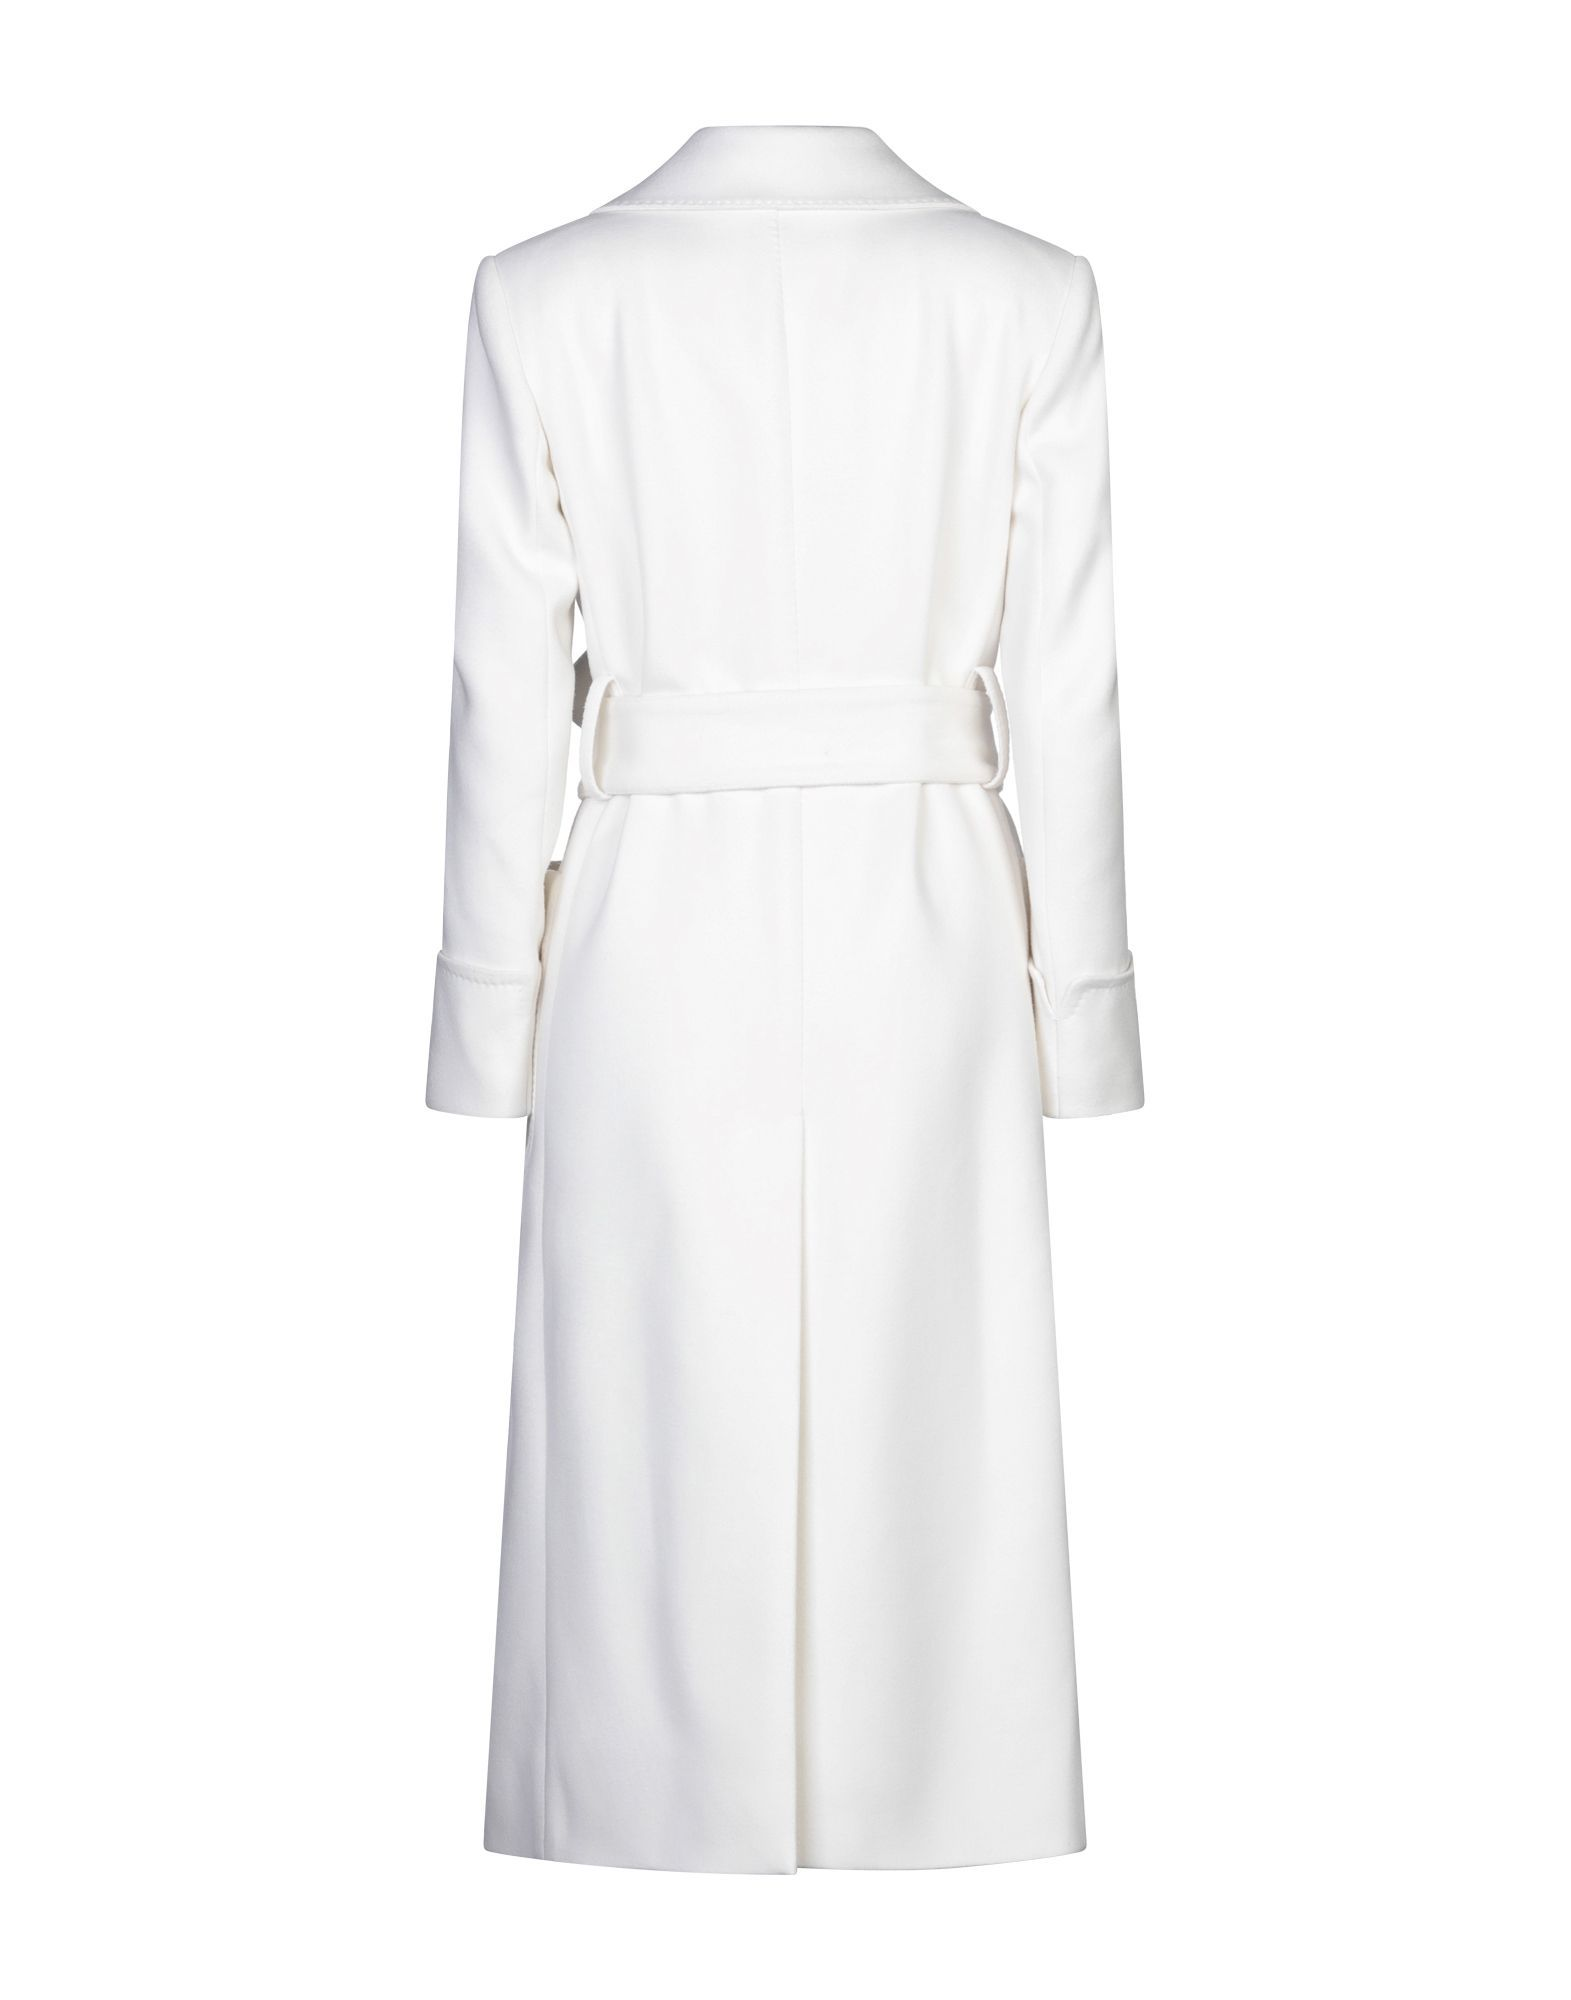 Dolce & Gabbana White Wool Belted Double Breasted Overcoat